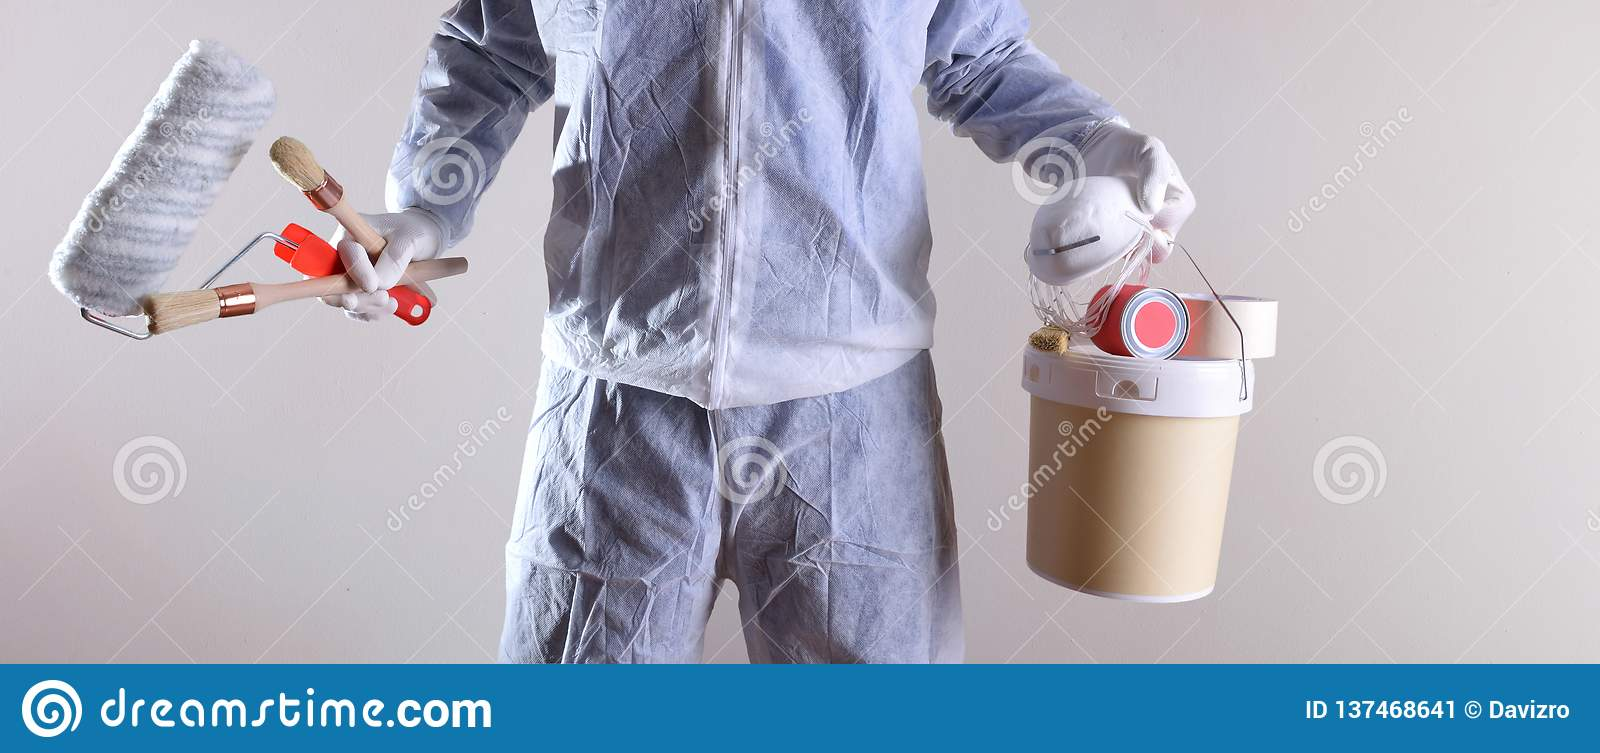 Professional painter with paint and tools and work protections background